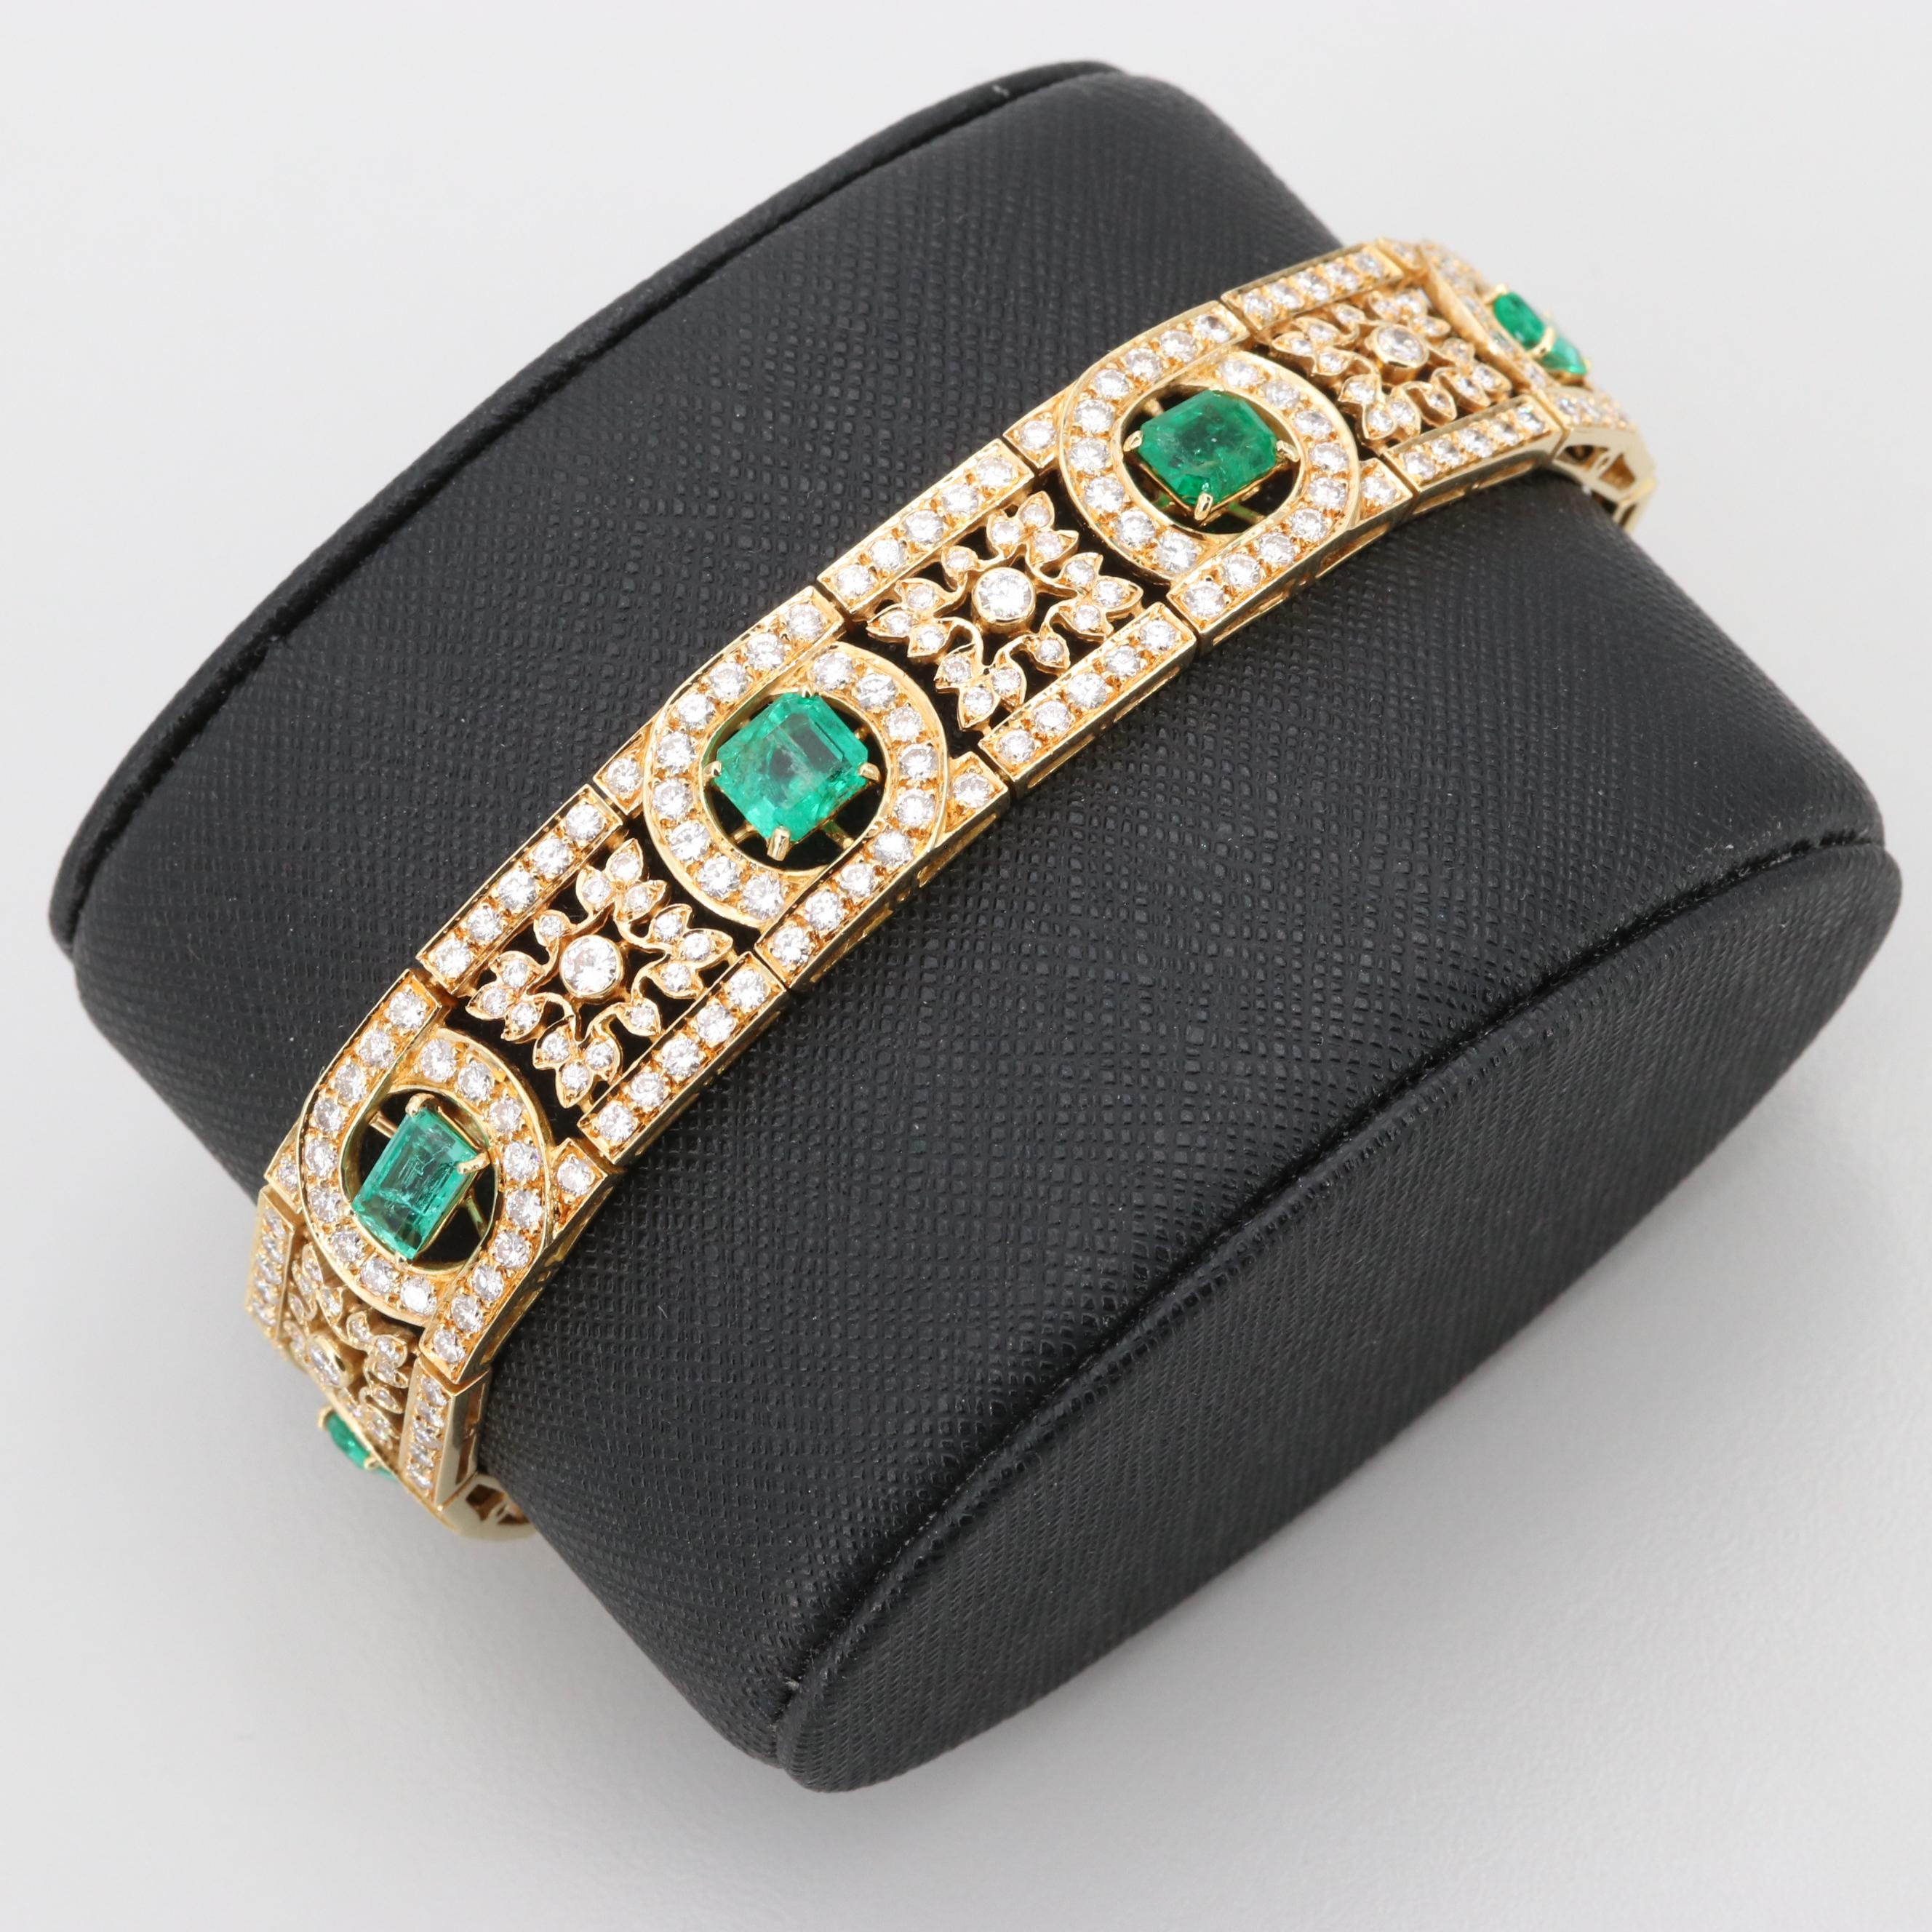 18K Yellow Gold 4.31 CTW Emerald and 7.45 CTW Diamond Linked Bracelet